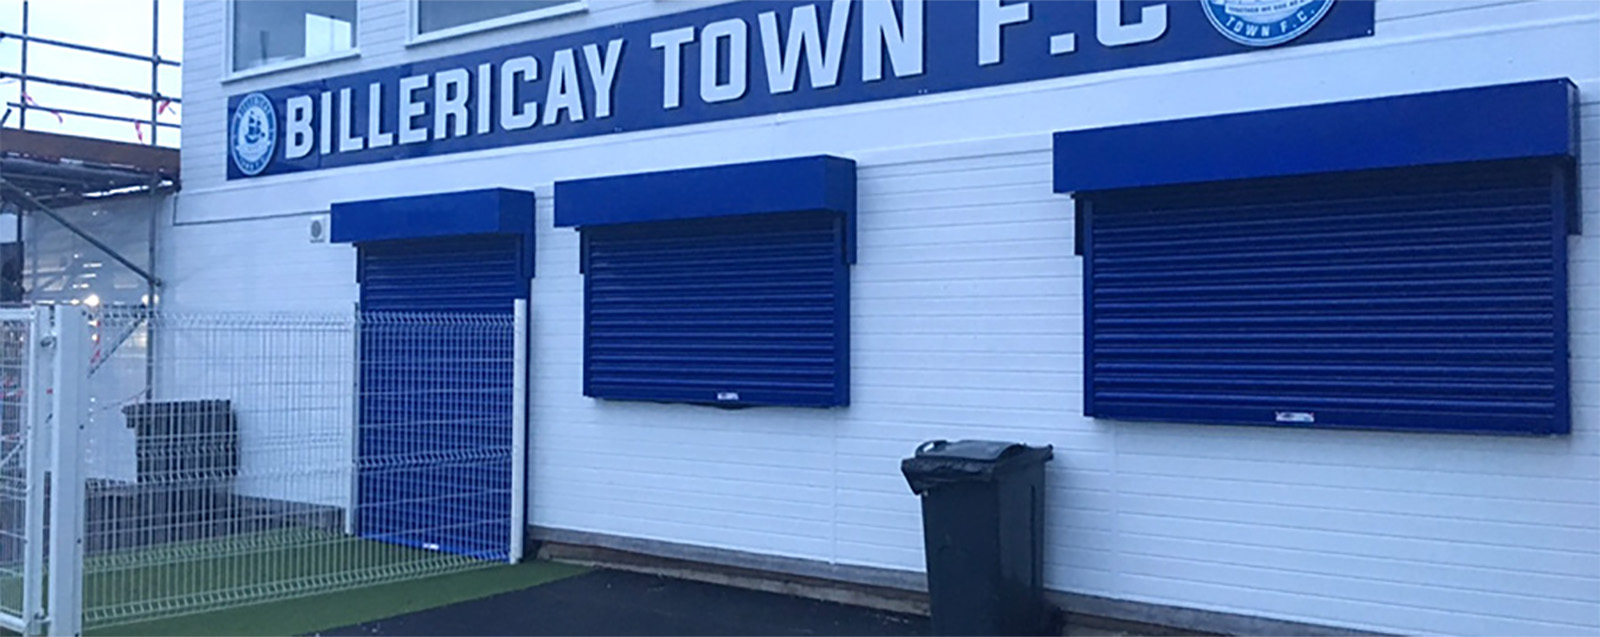 Proud installers of Billericay FC Shutters 2017